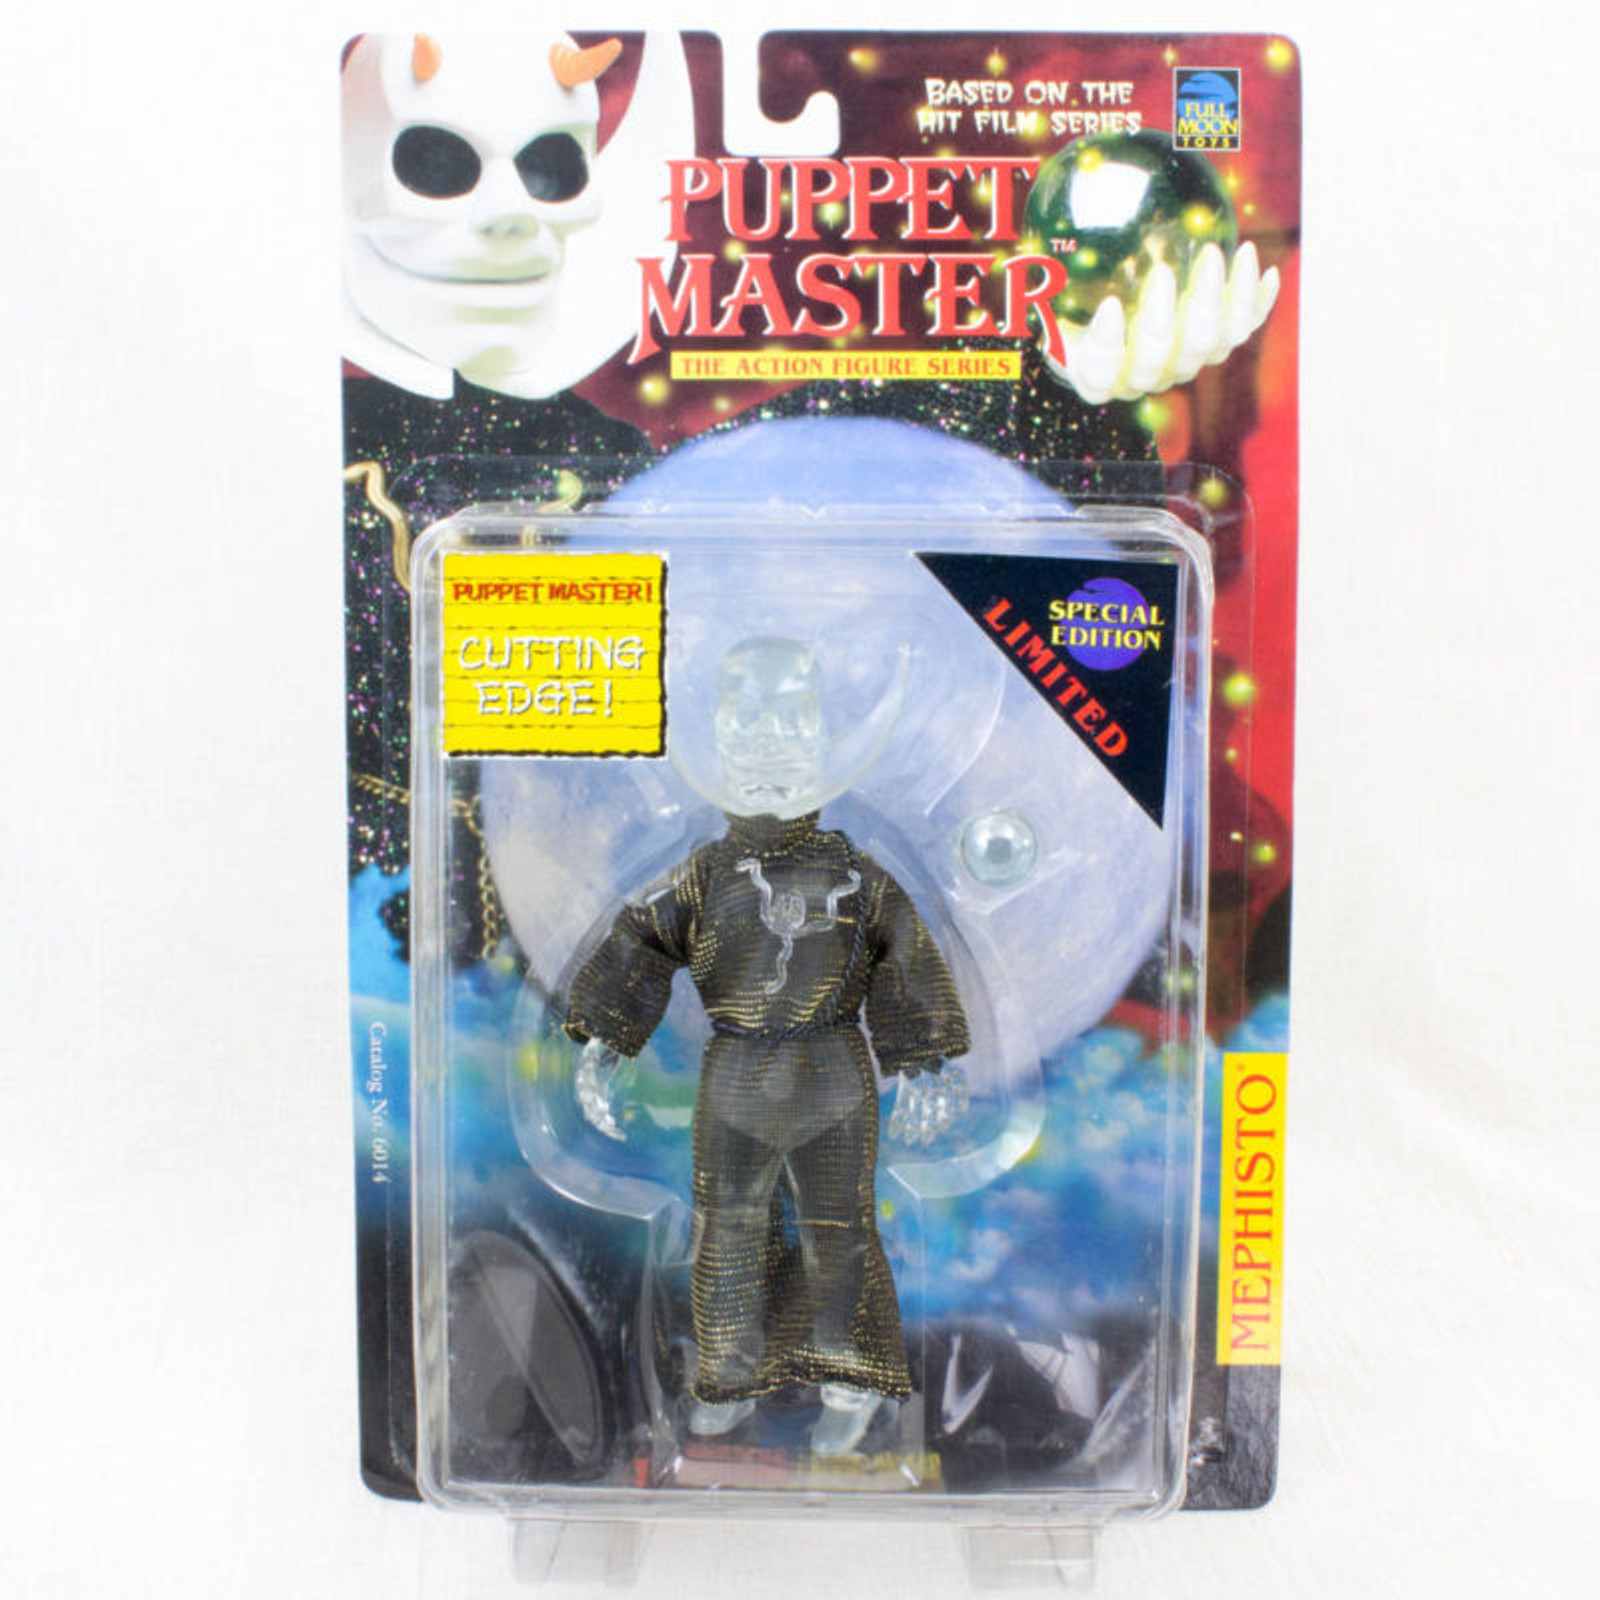 PUPPET MASTER Mephisto Figure Clear Limited Special Edition Full Moon Toys